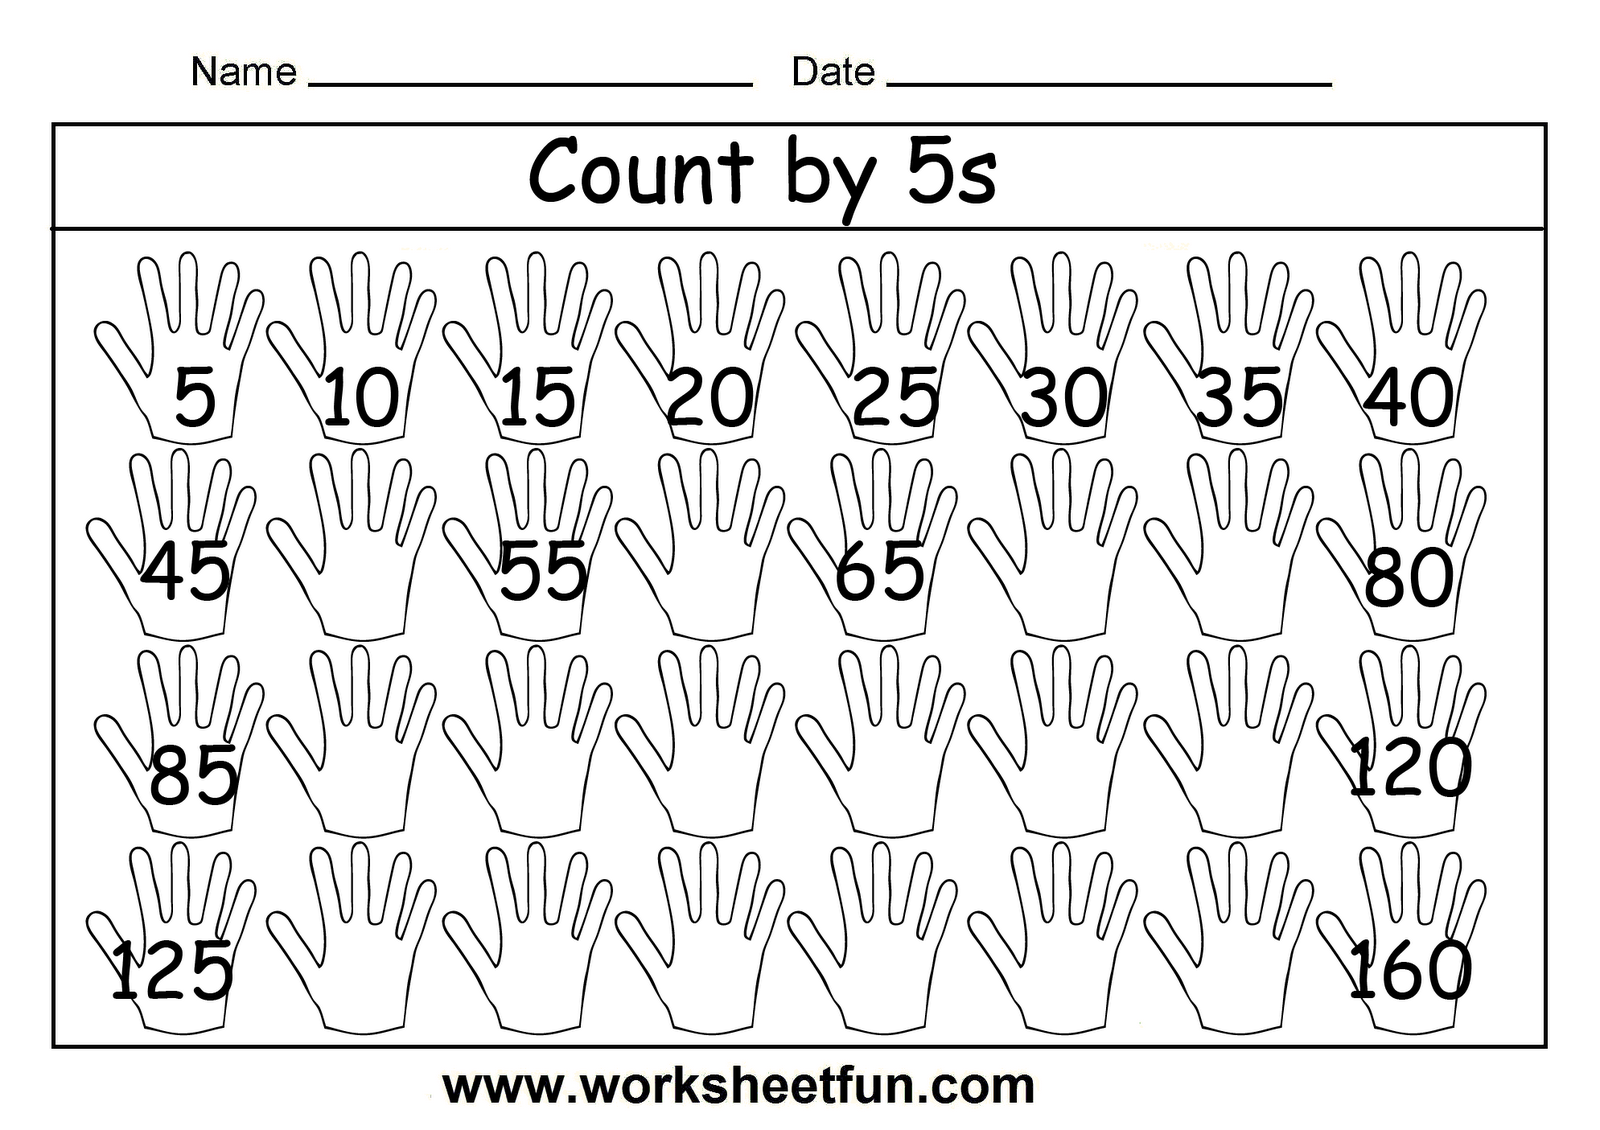 small resolution of Worksheetfun - FREE PRINTABLE WORKSHEETS   Free printable math worksheets